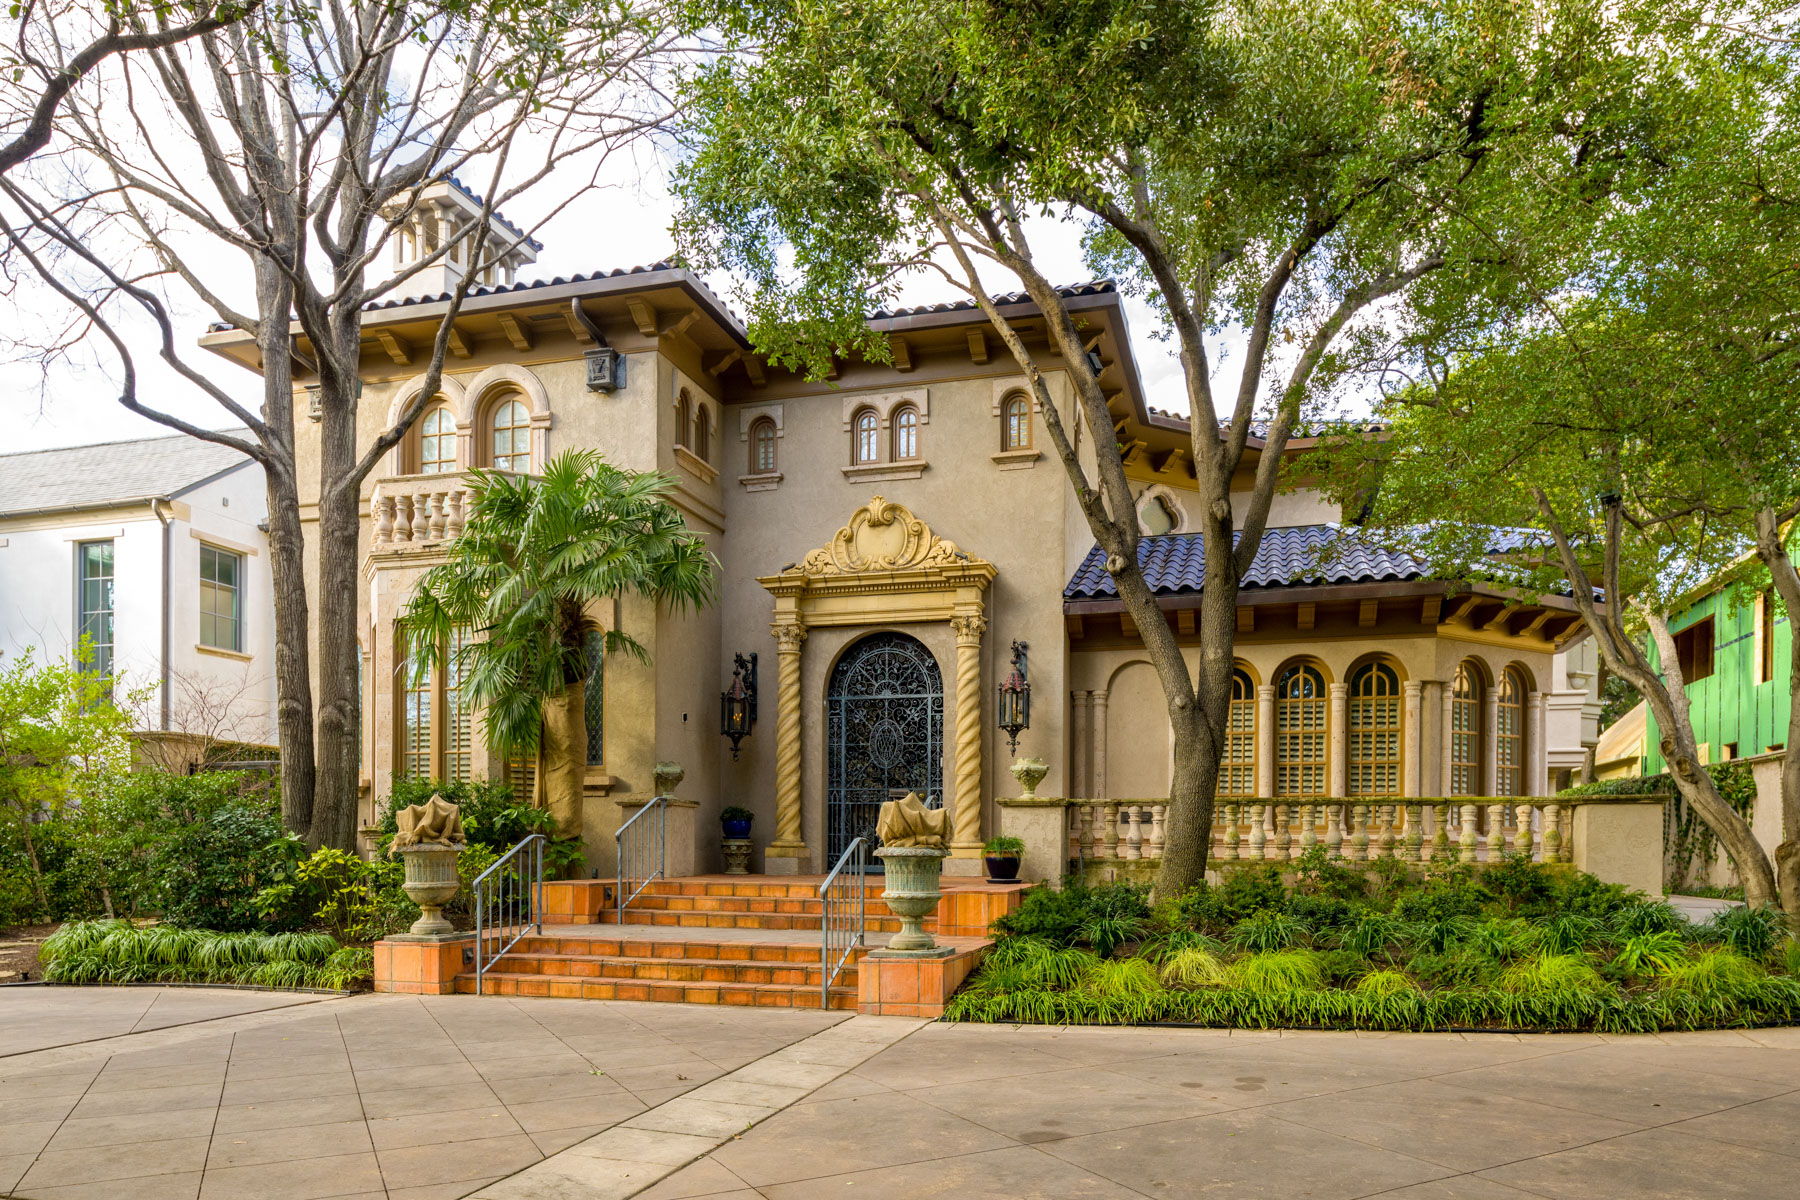 Single Family Homes for Sale at Highland Park Spanish Mediterranean Home 4332 Lorraine Avenue Highland Park, Texas 75205 United States